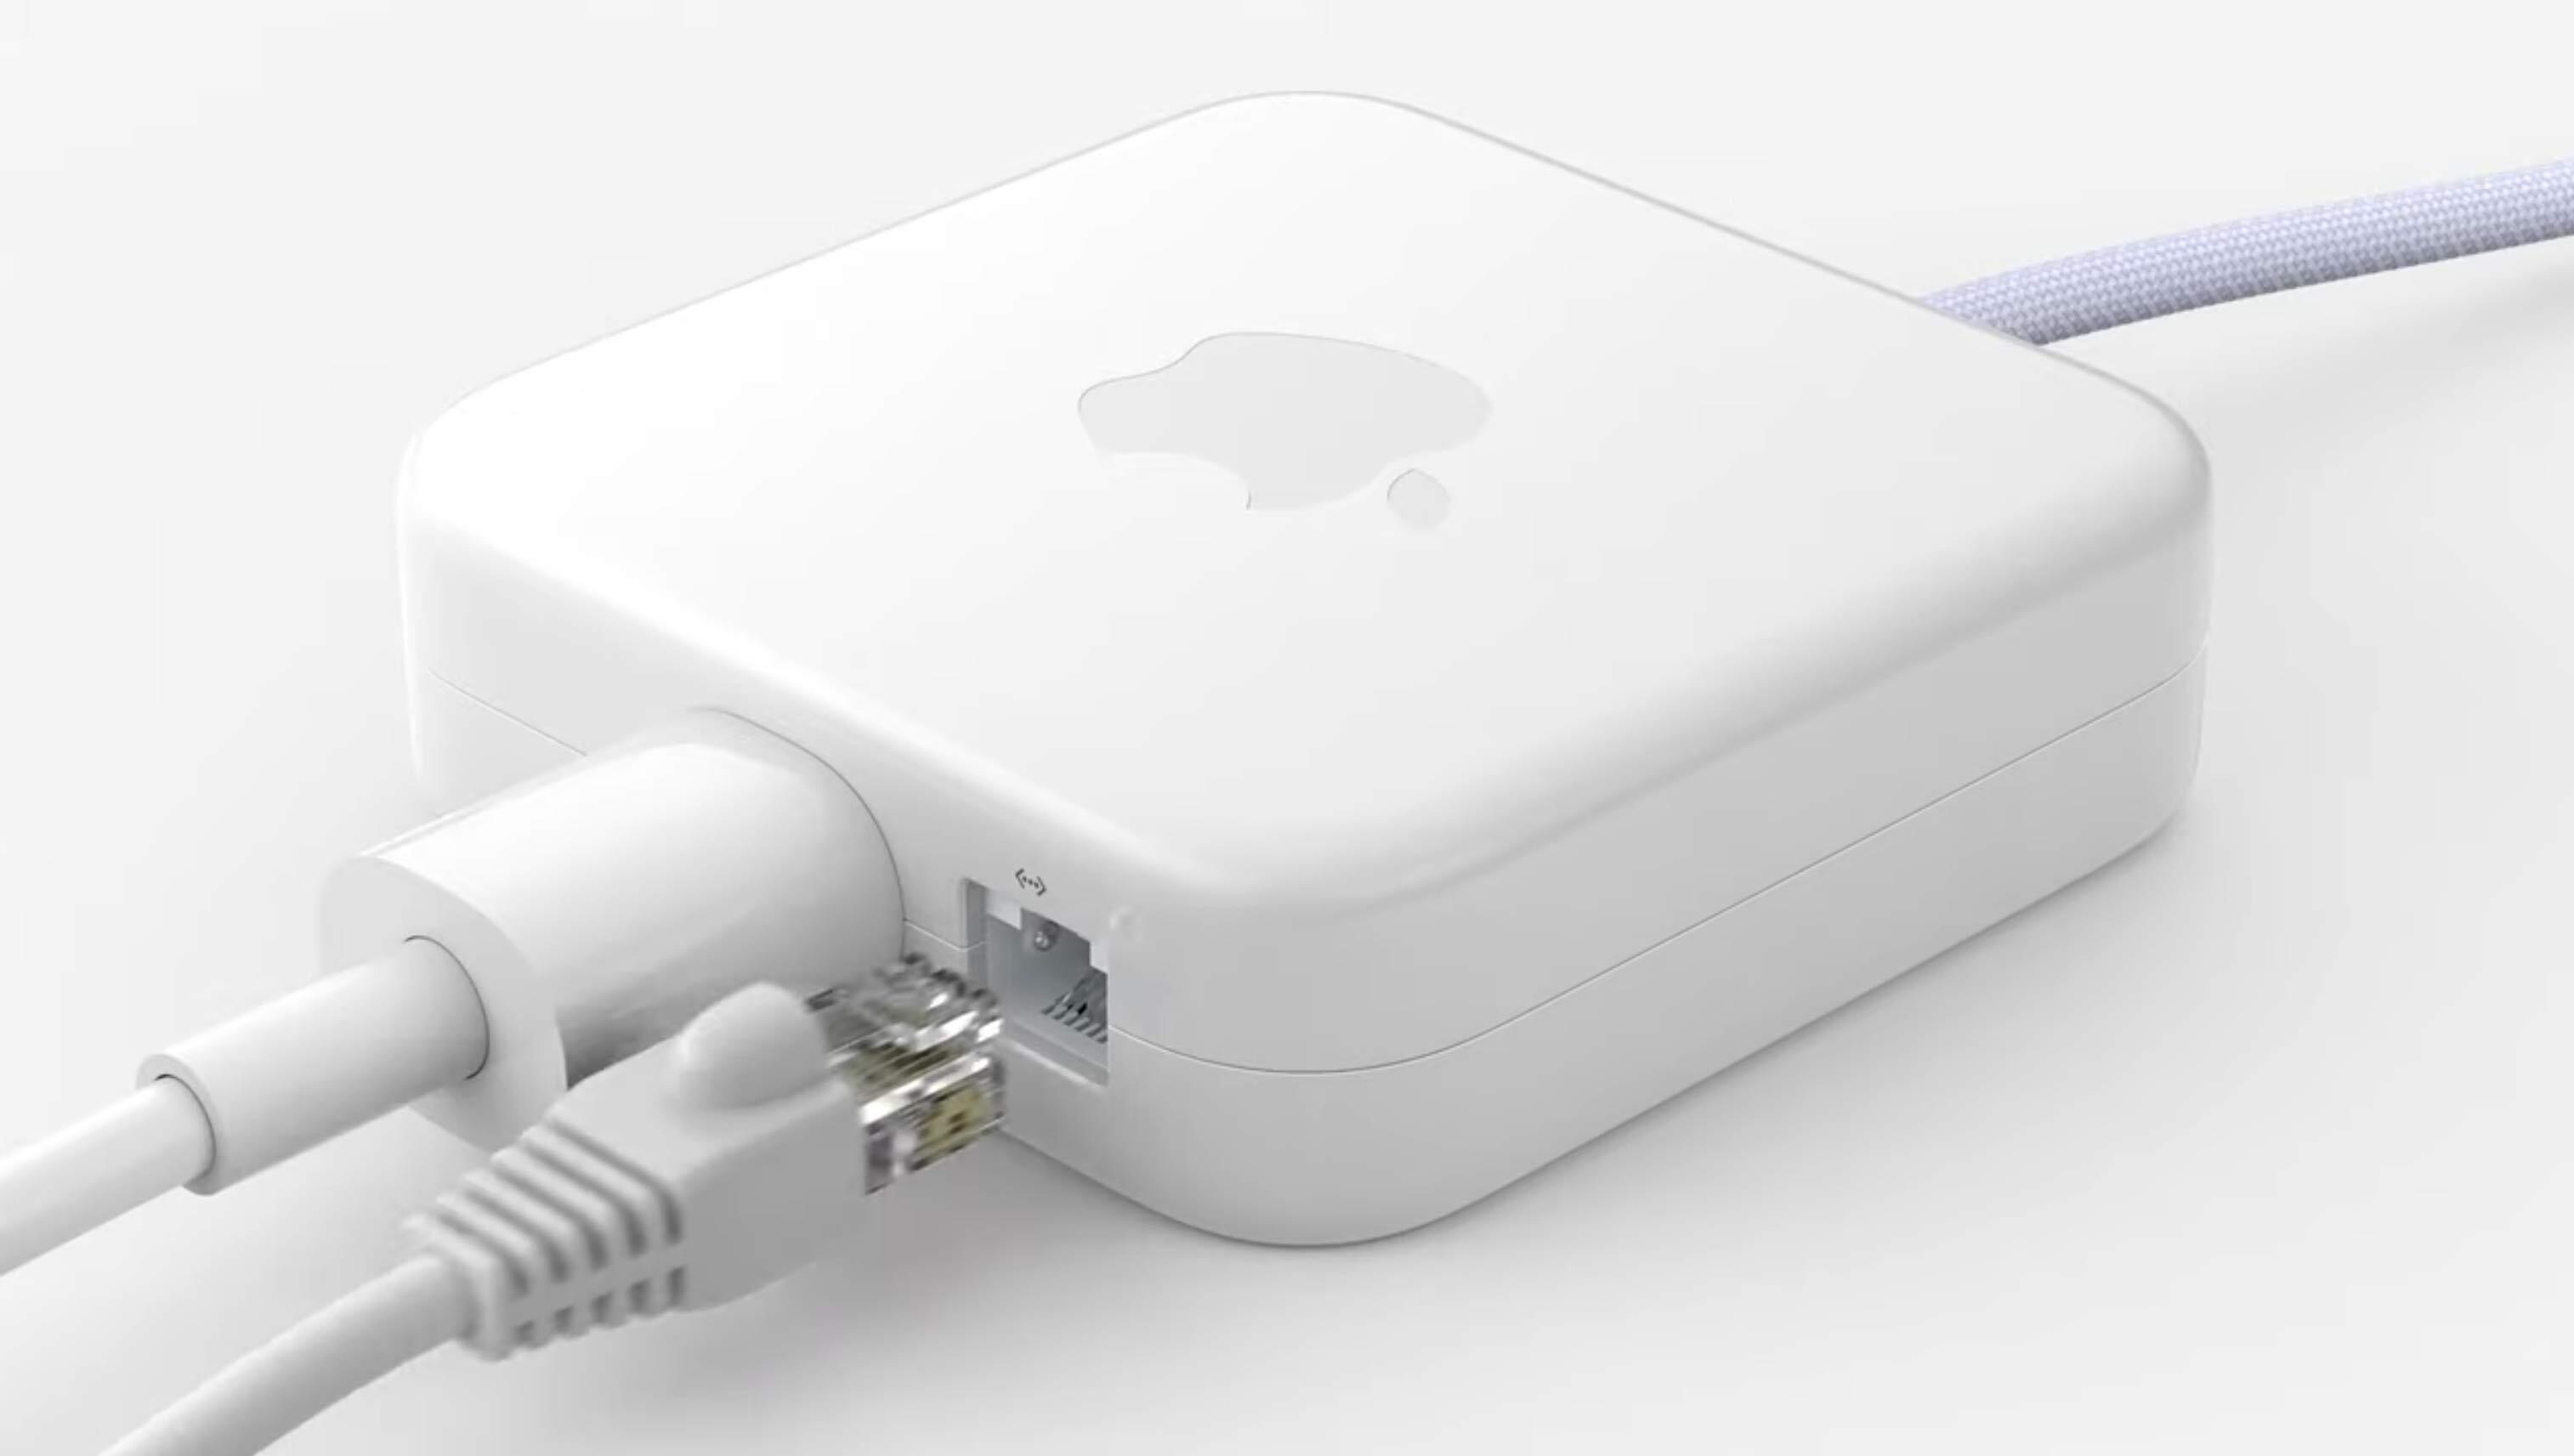 iMac power adapter with Ethernet port